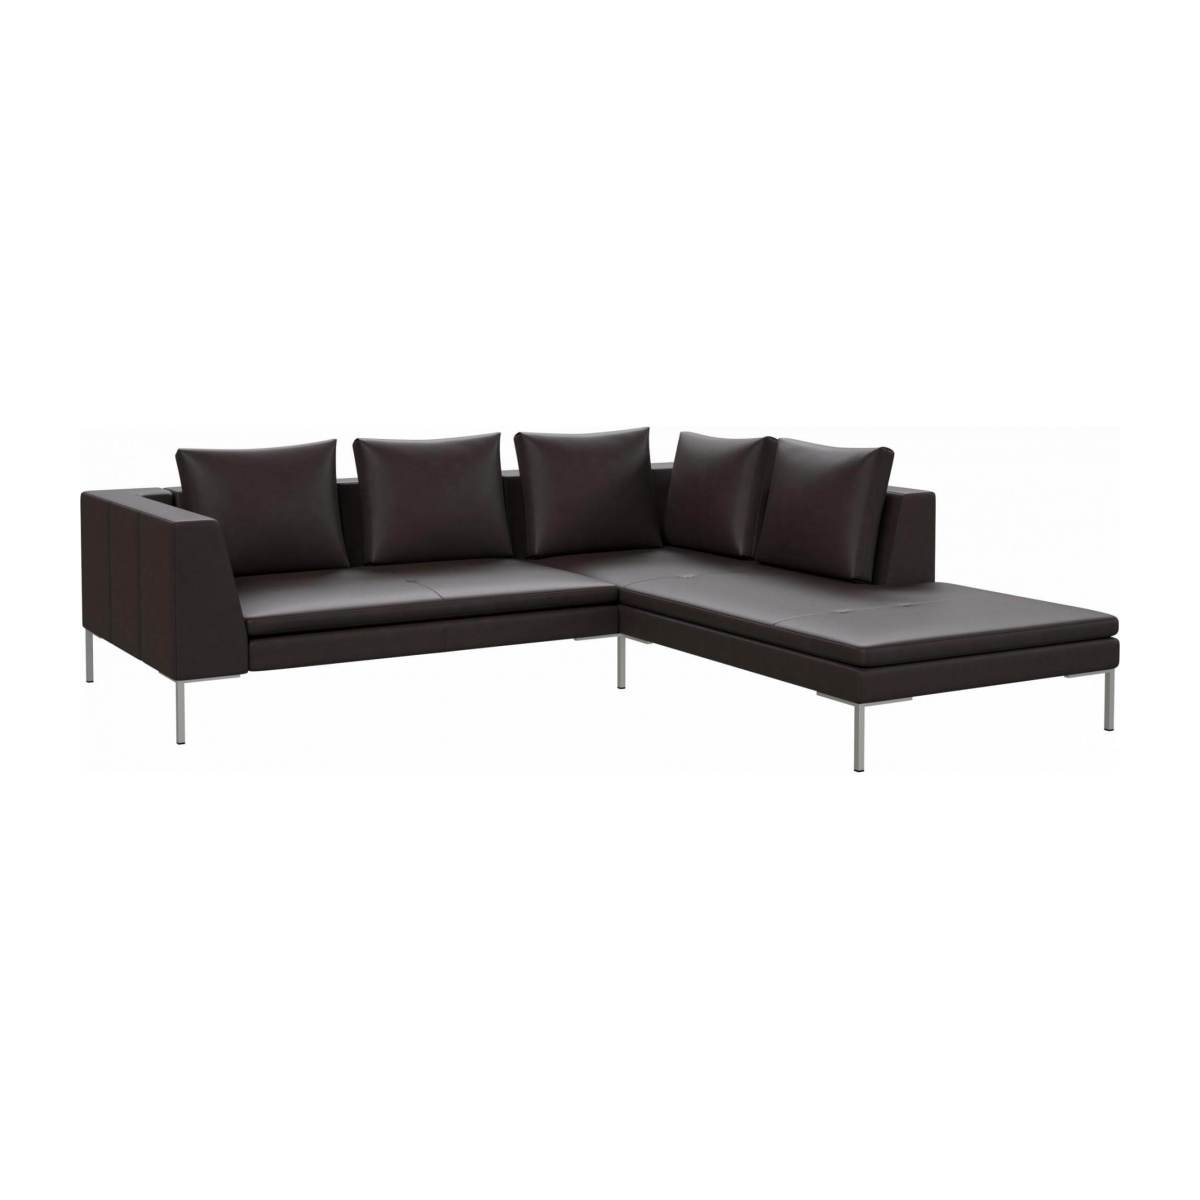 2 seater sofa with chaise longue on the right in Savoy semi-aniline leather, dark brown amaretto  n°2